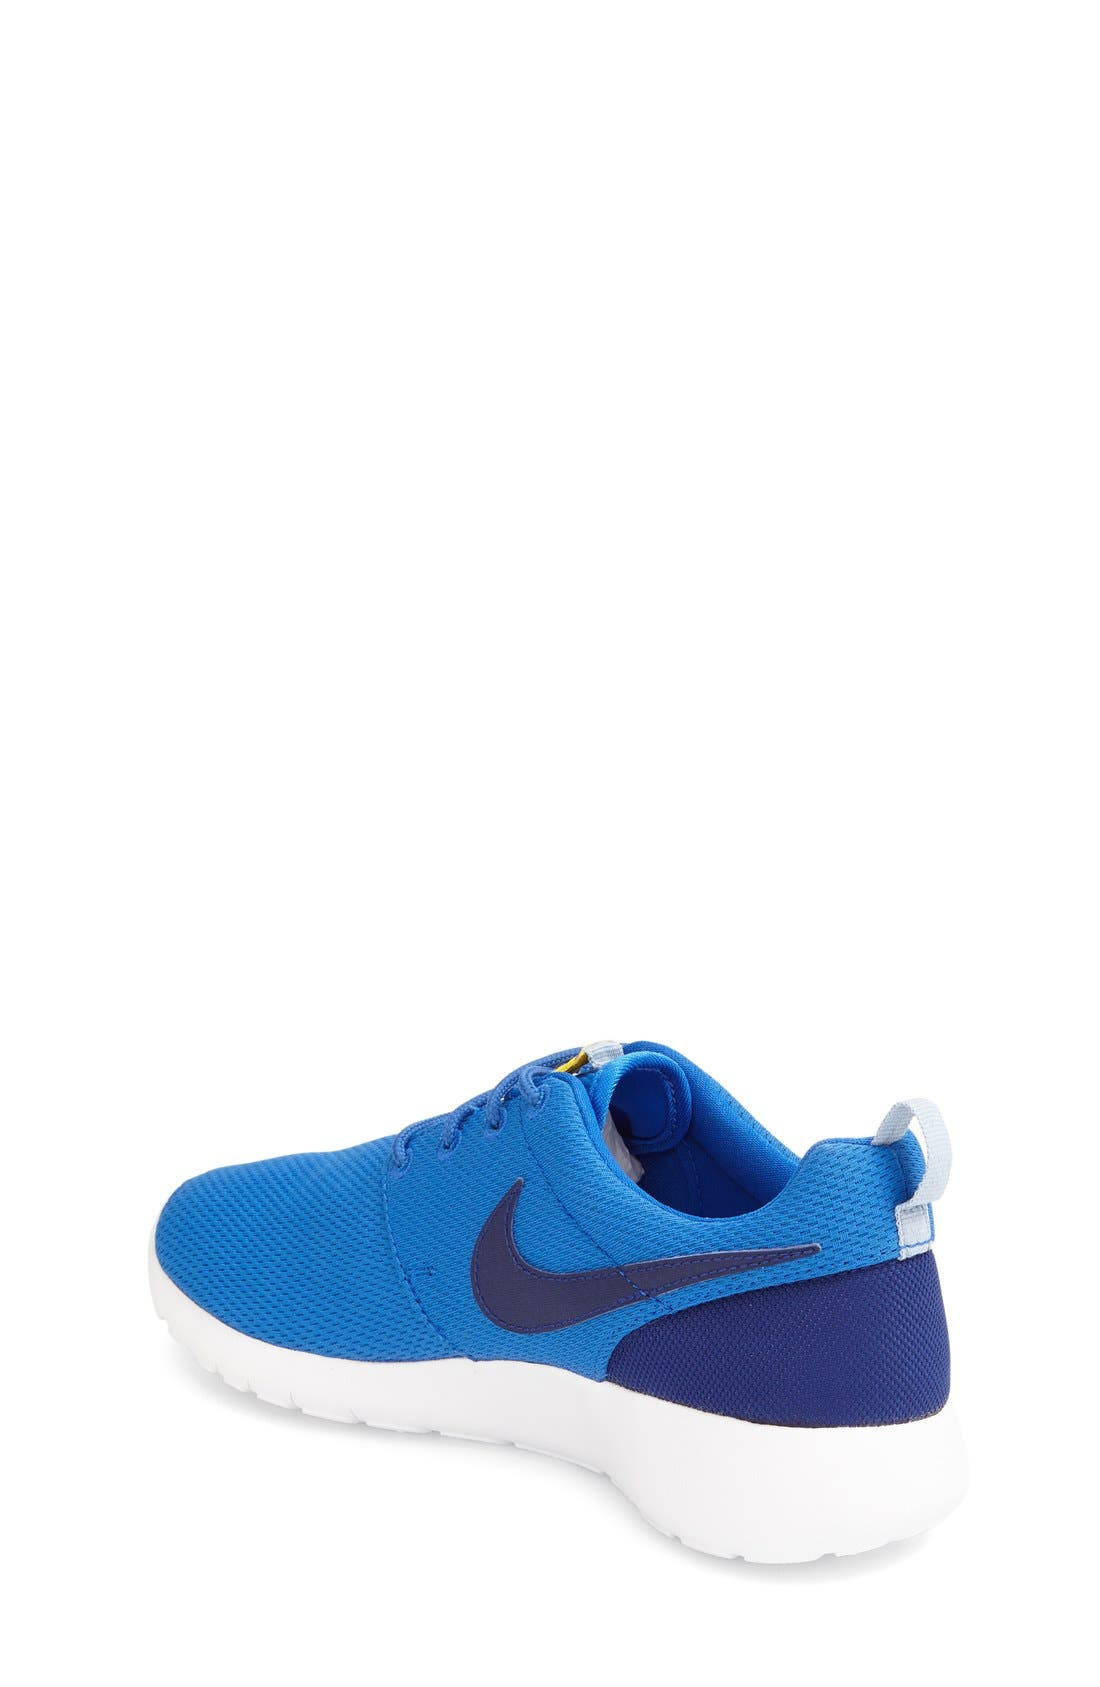 'Roshe Run' Sneaker,                             Alternate thumbnail 91, color,